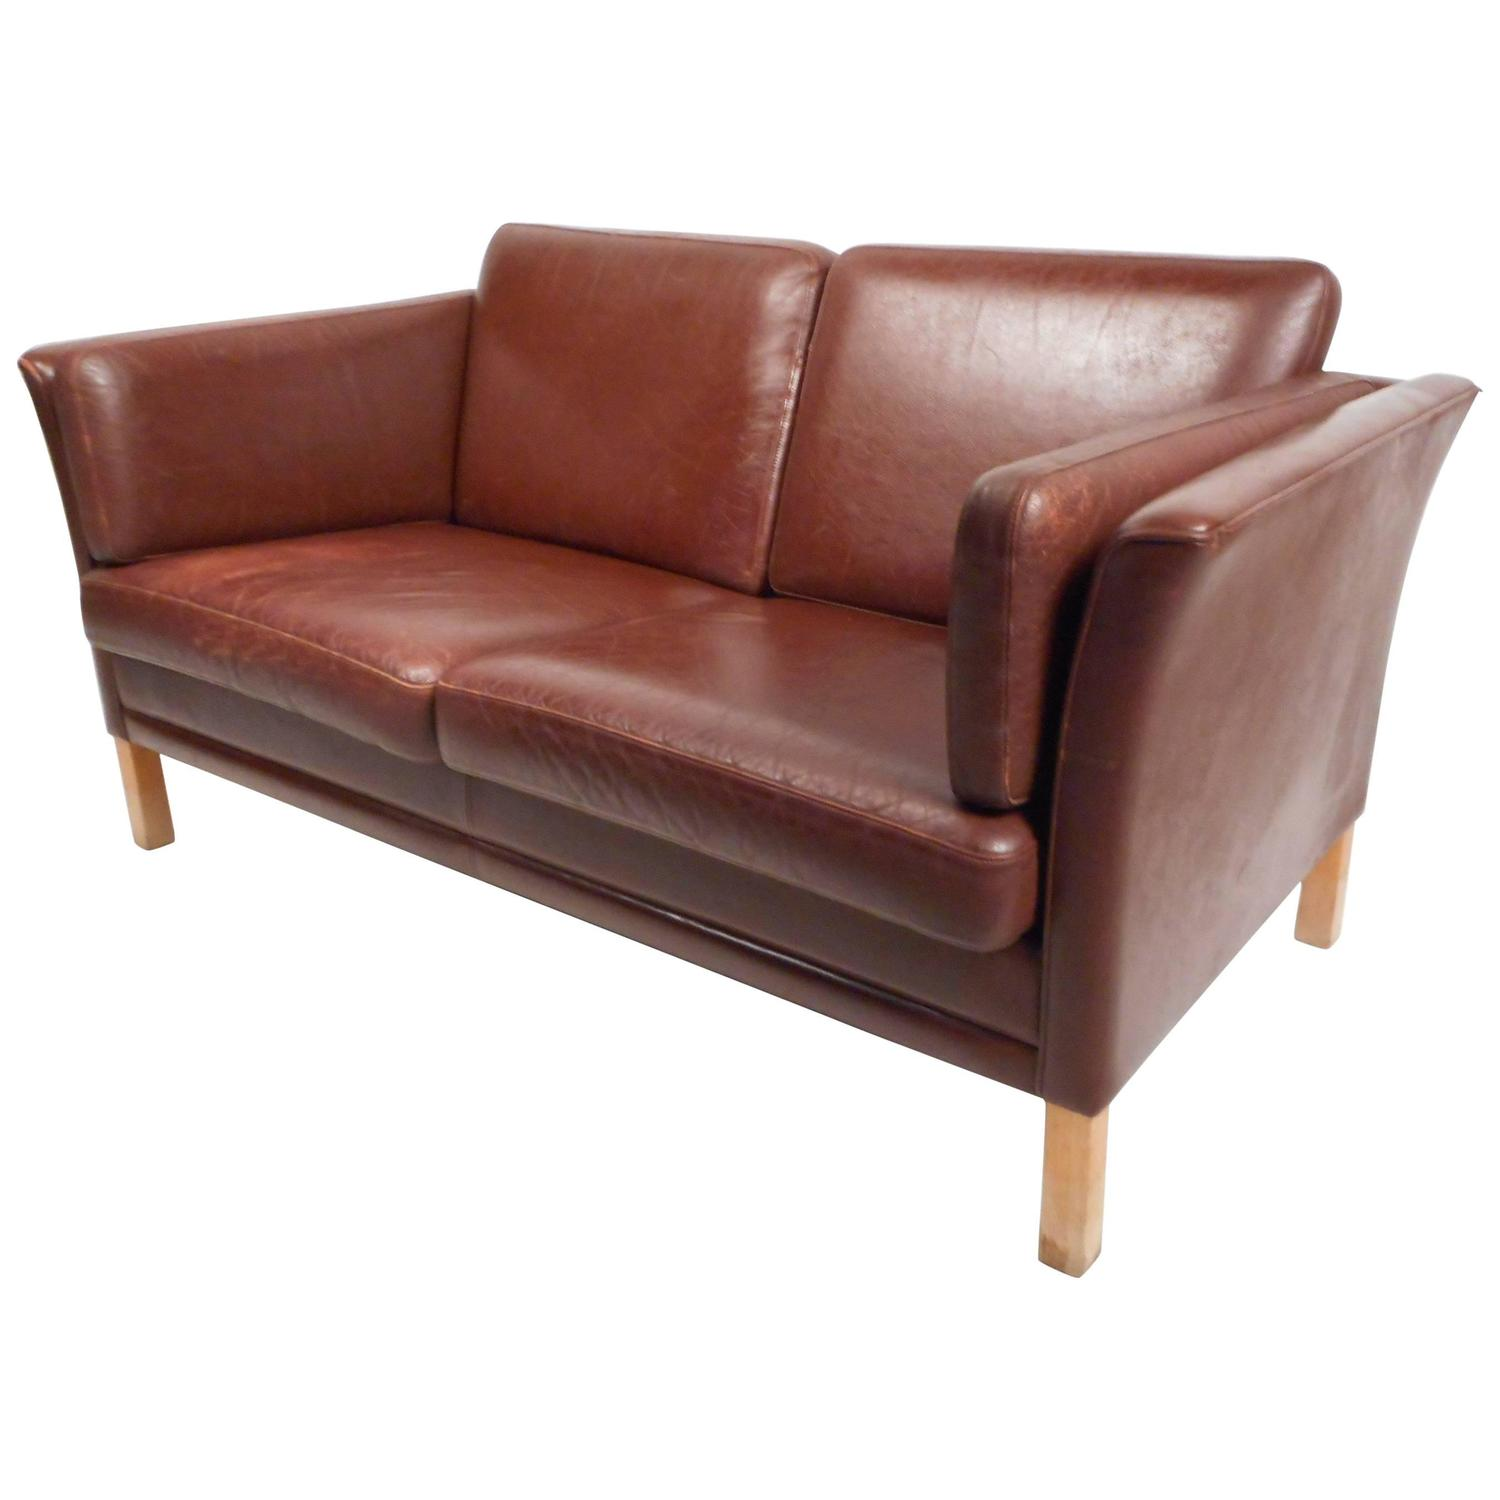 Mid Century Modern Danish Leather Loveseat For Sale At 1stdibs